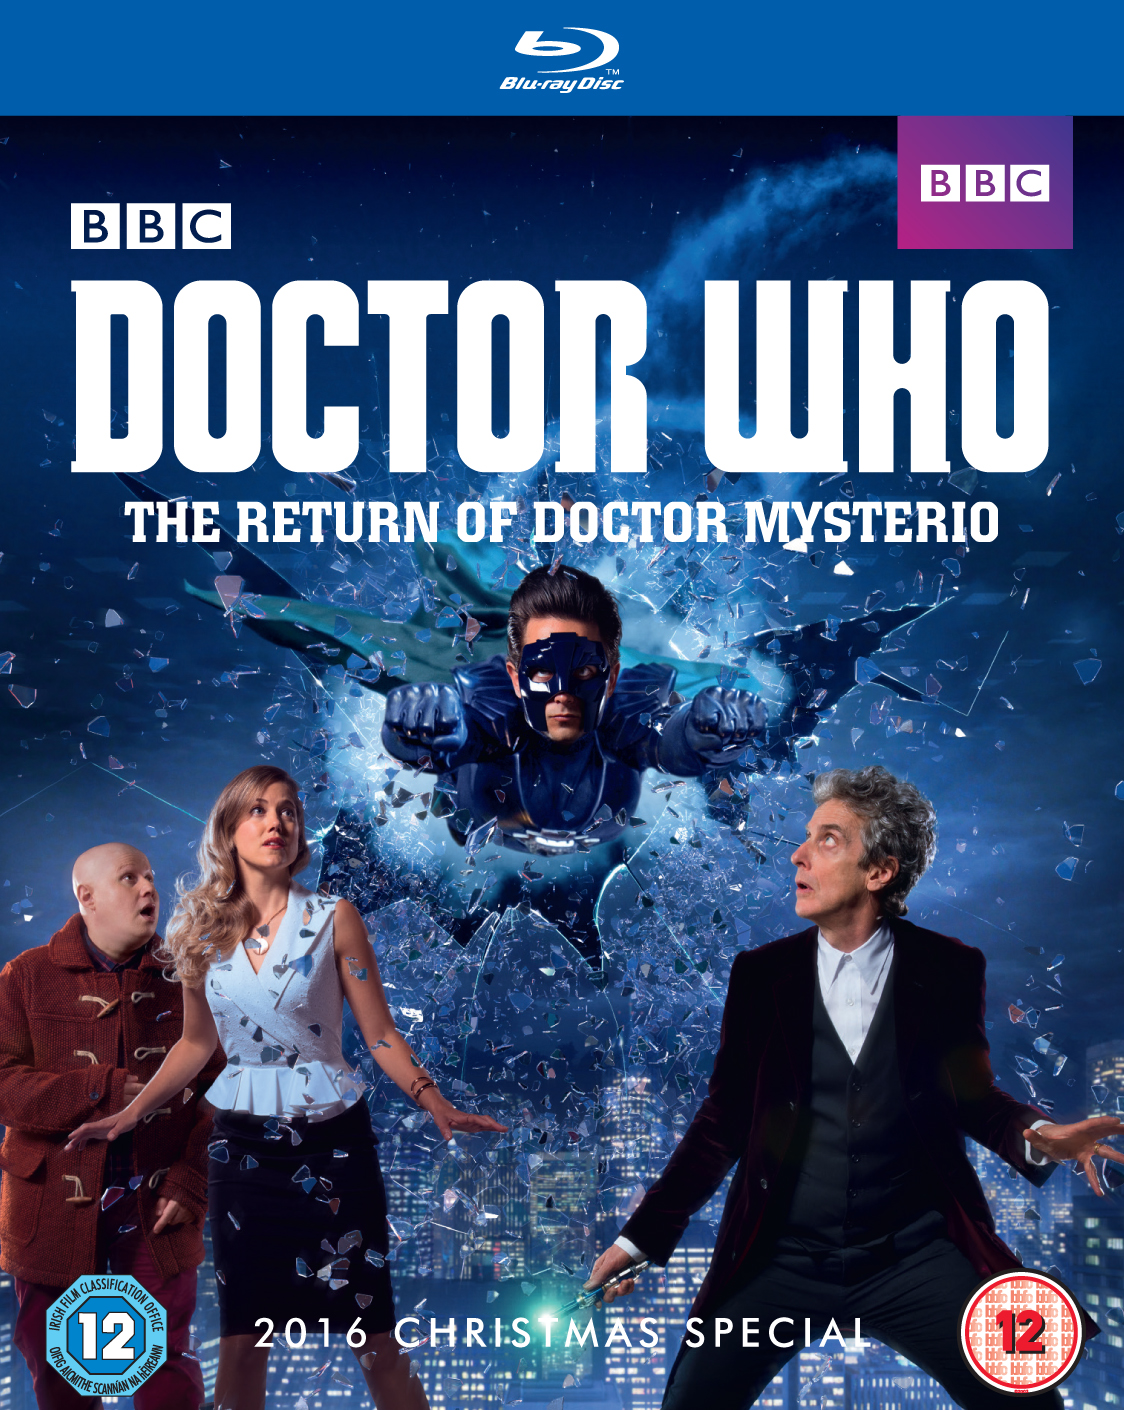 The Return of Doctor Mysterio Blu-ray